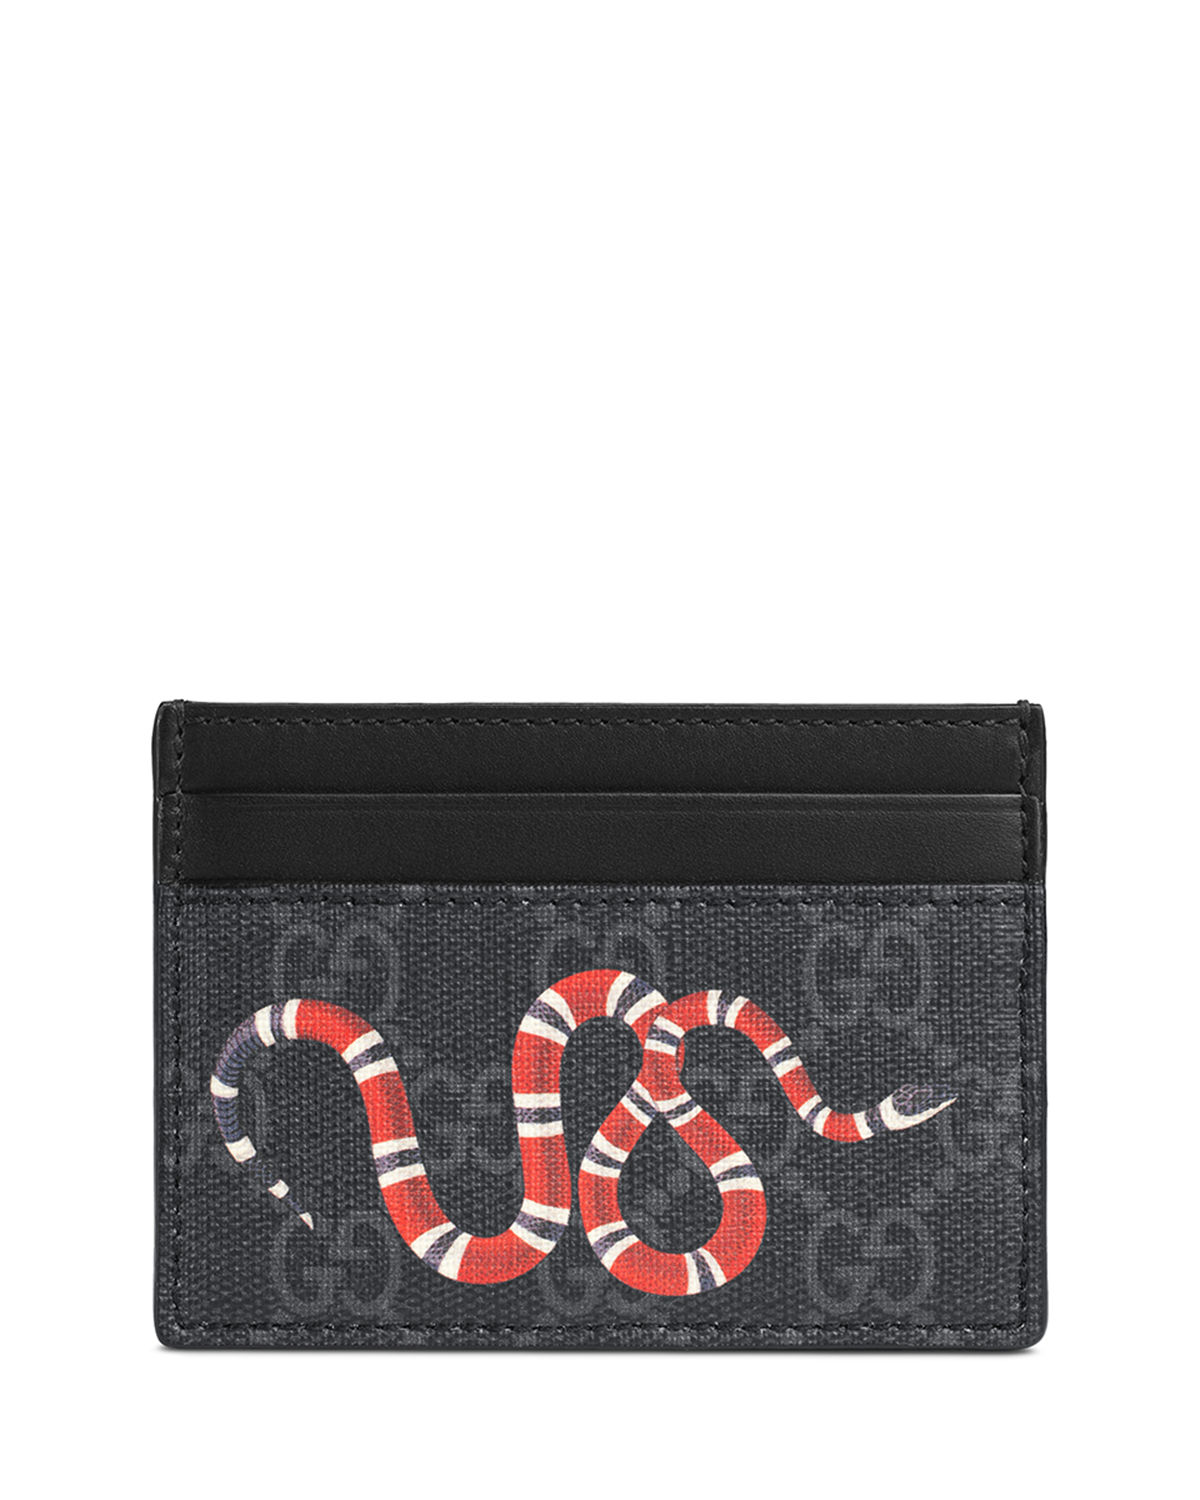 a629b72143f1 Gucci Bestiary Snake-Print GG Supreme Card Case | Neiman Marcus